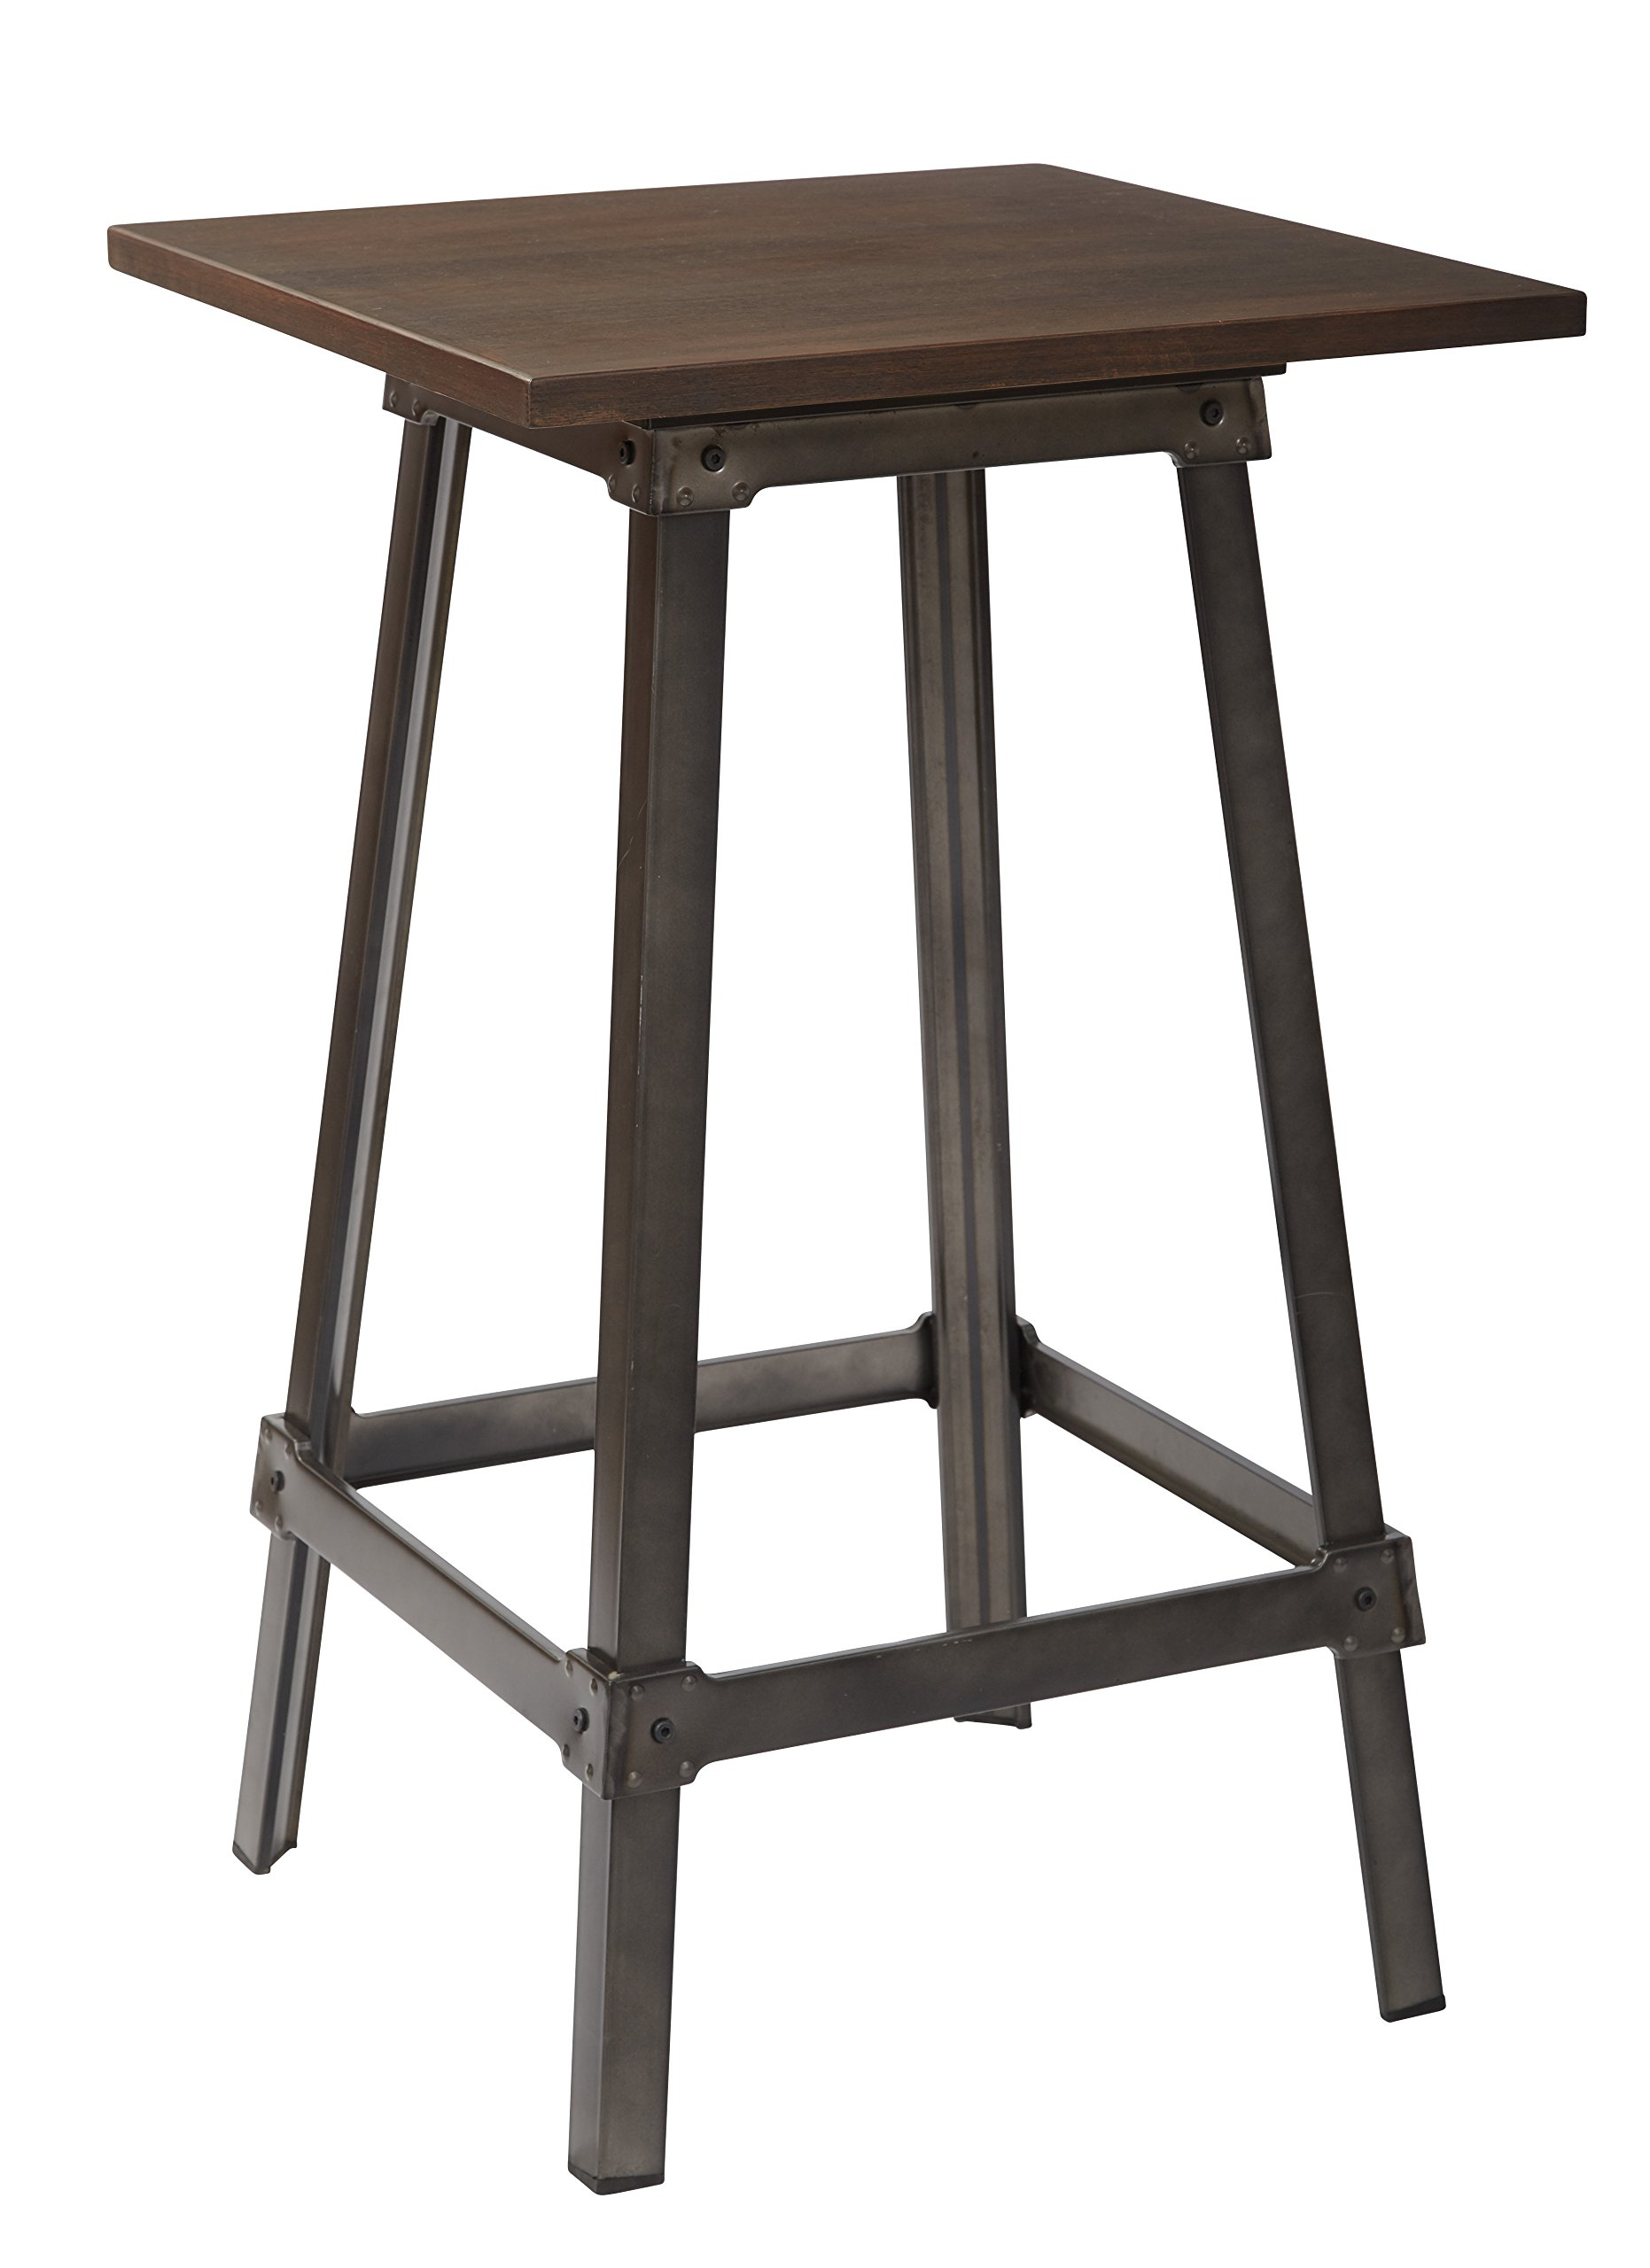 Office Star Indio Matte Gunmetal Metal Frame Pub Table with Vintage Ash Walnut Wood Table Top